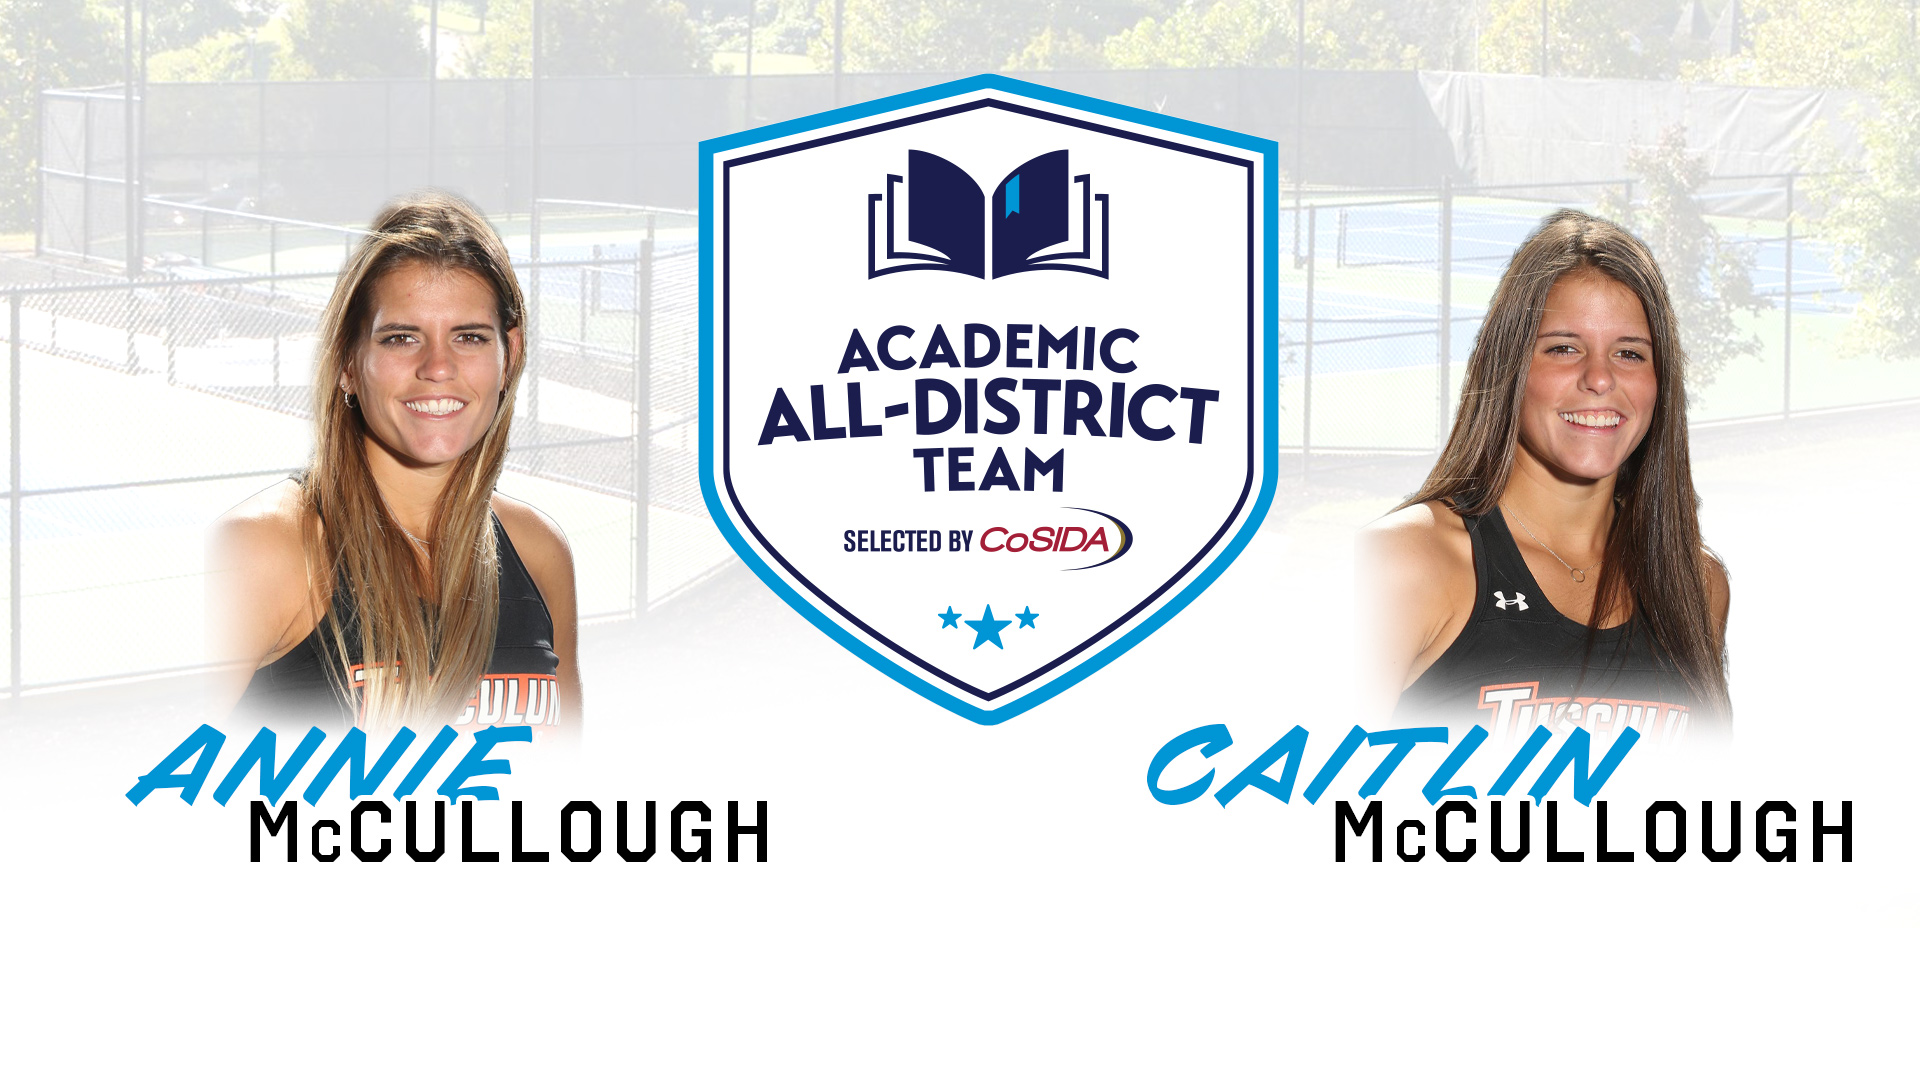 McCullough sisters named to Academic All-District team